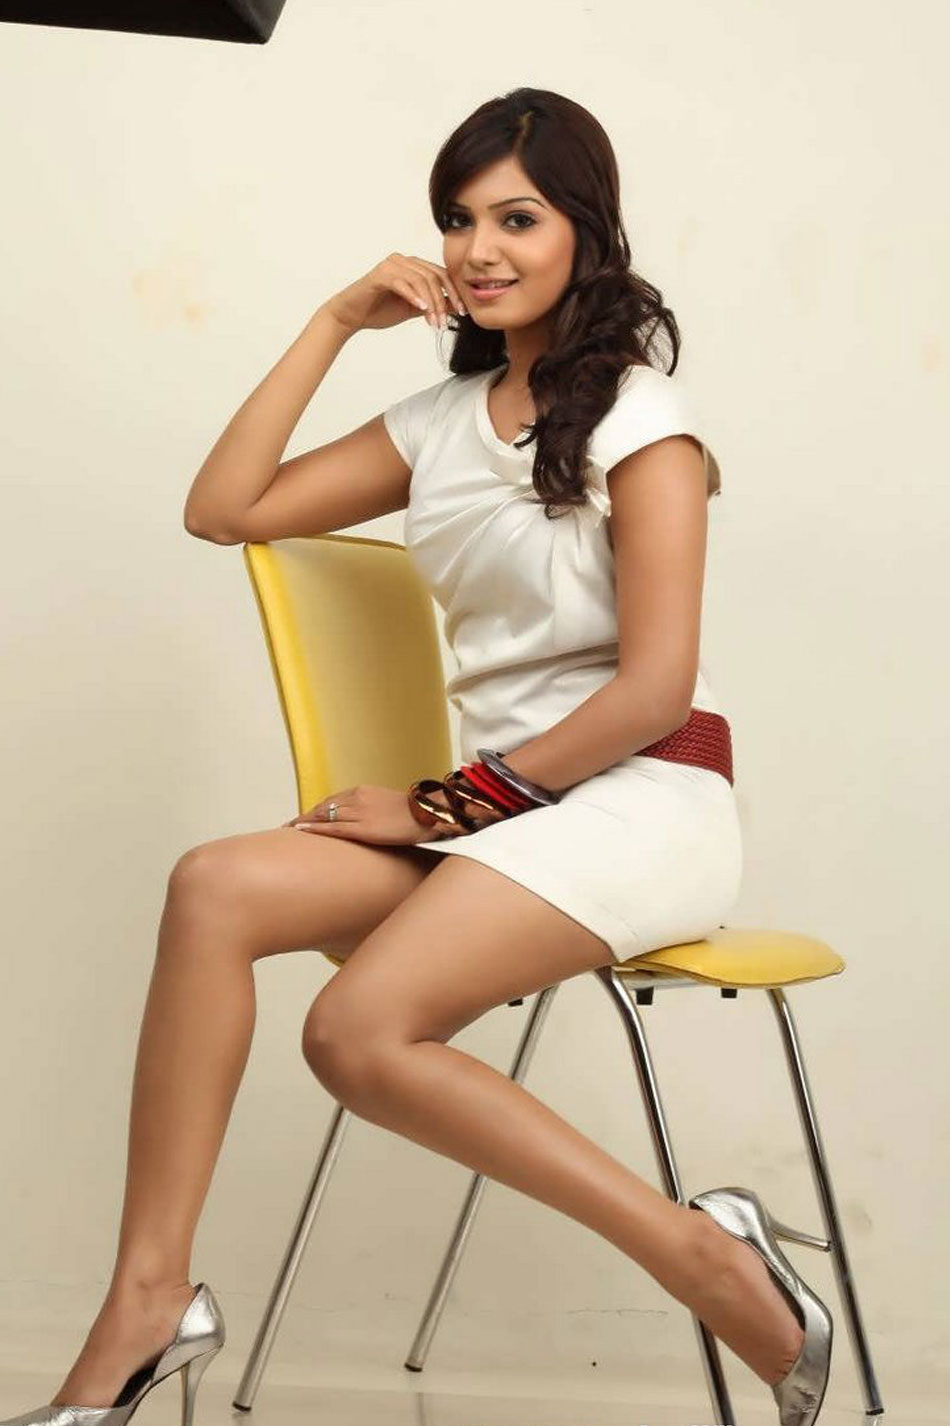 Samantha hot photos old collection 1 | Picture 6